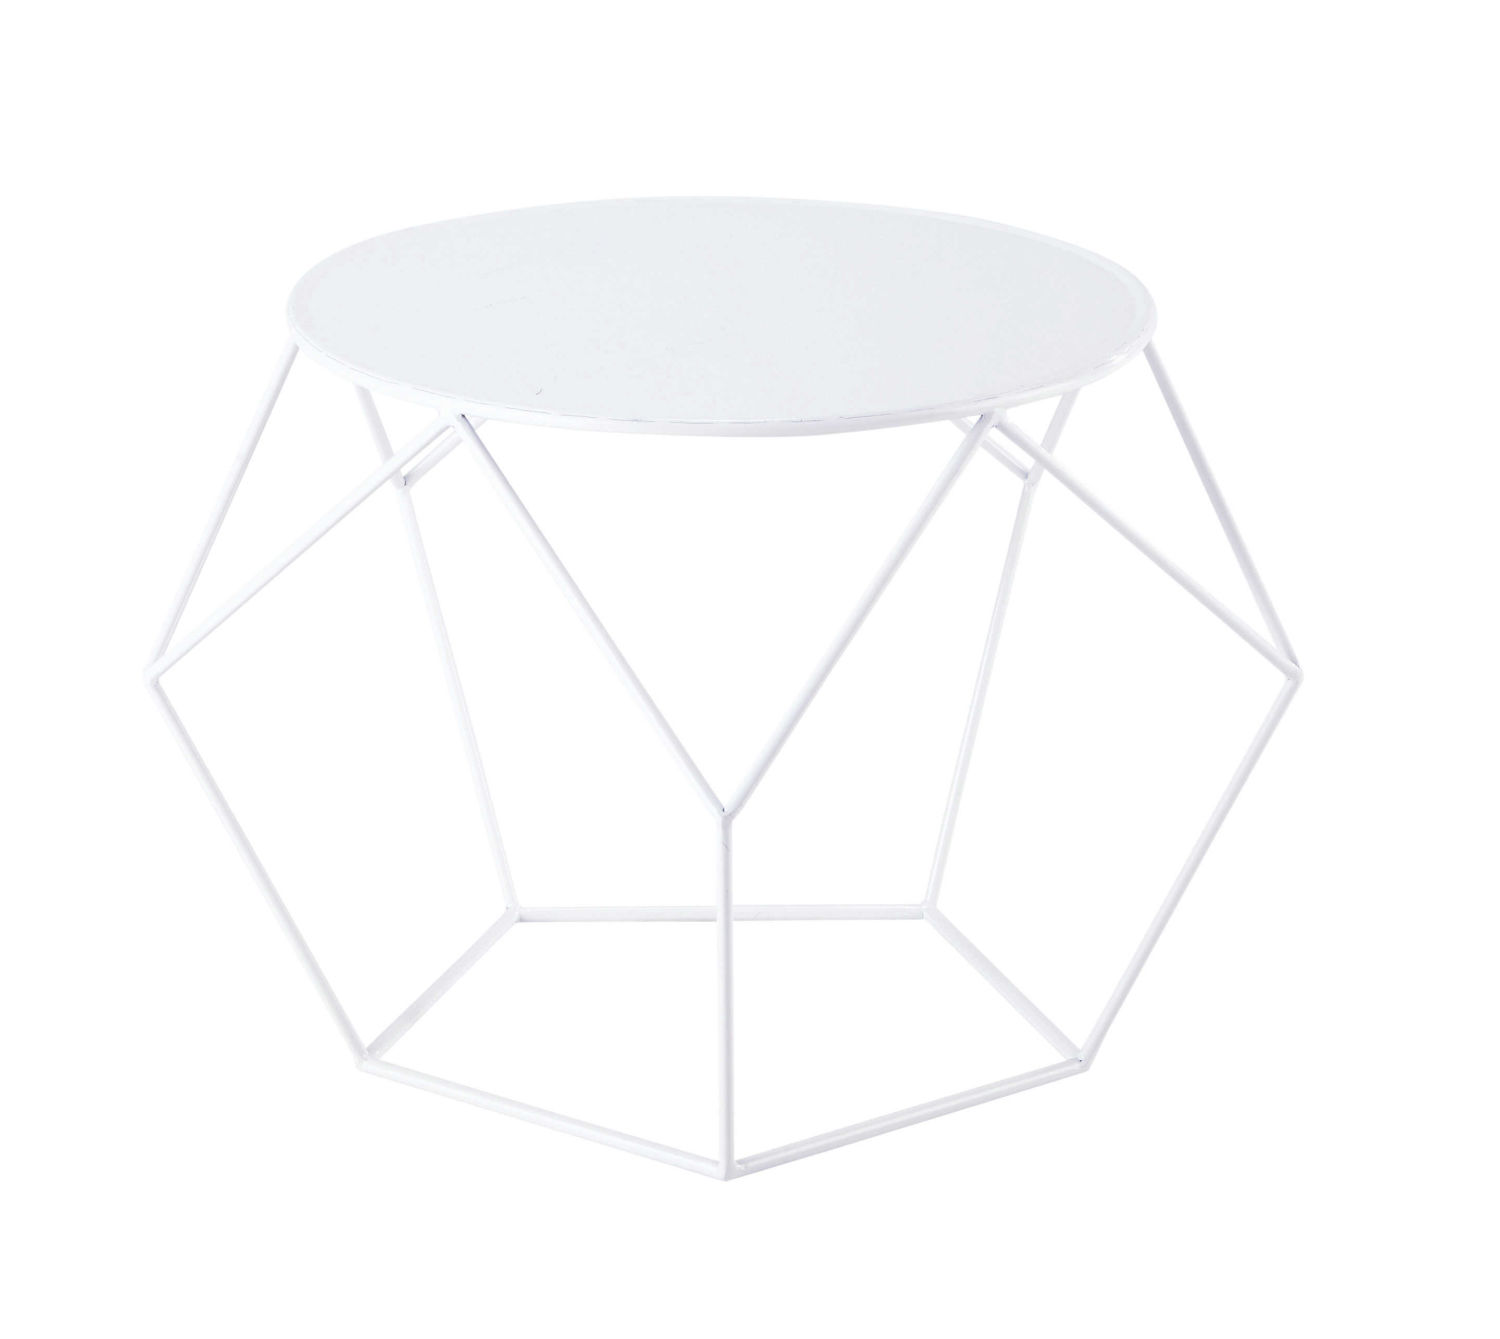 25 Ideas Of Metal Coffee Table Base Only: Metal Round Coffee Table In White D 64cm